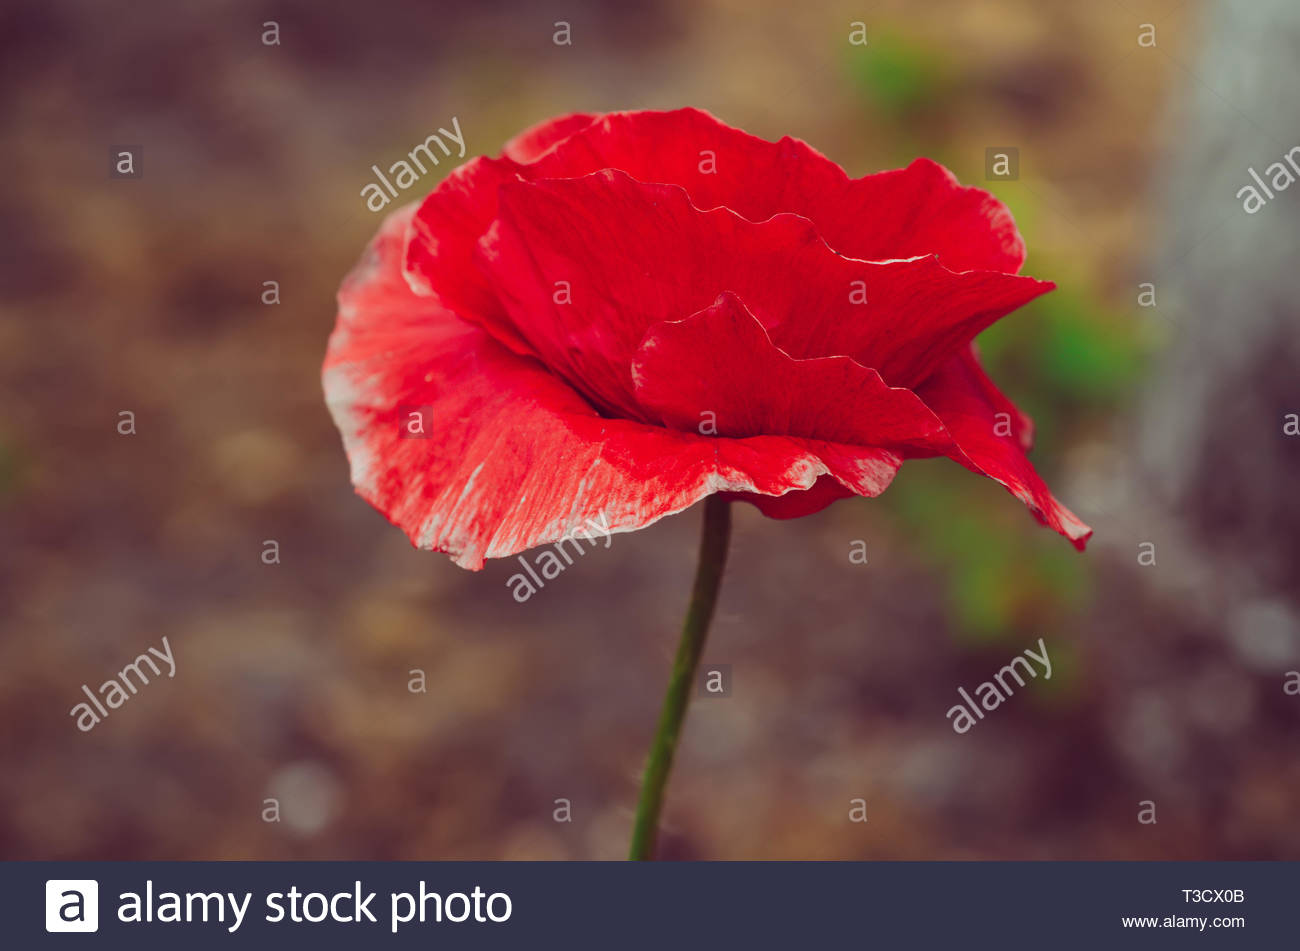 Red poppy flower blooming in the field floral natural spring 1300x951